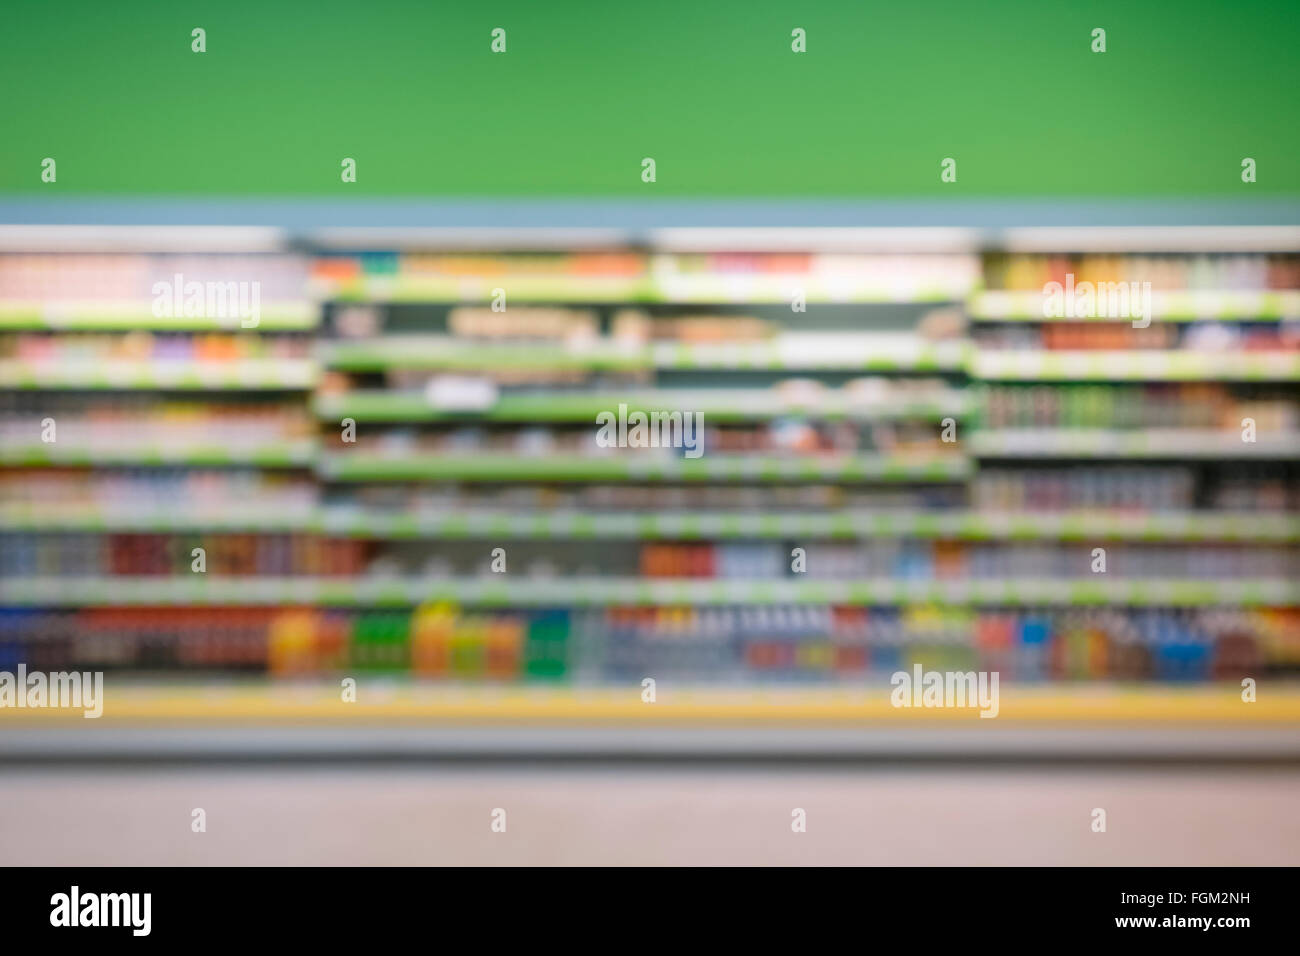 Defocused and blurry image of supermarket display shelves - Stock Image